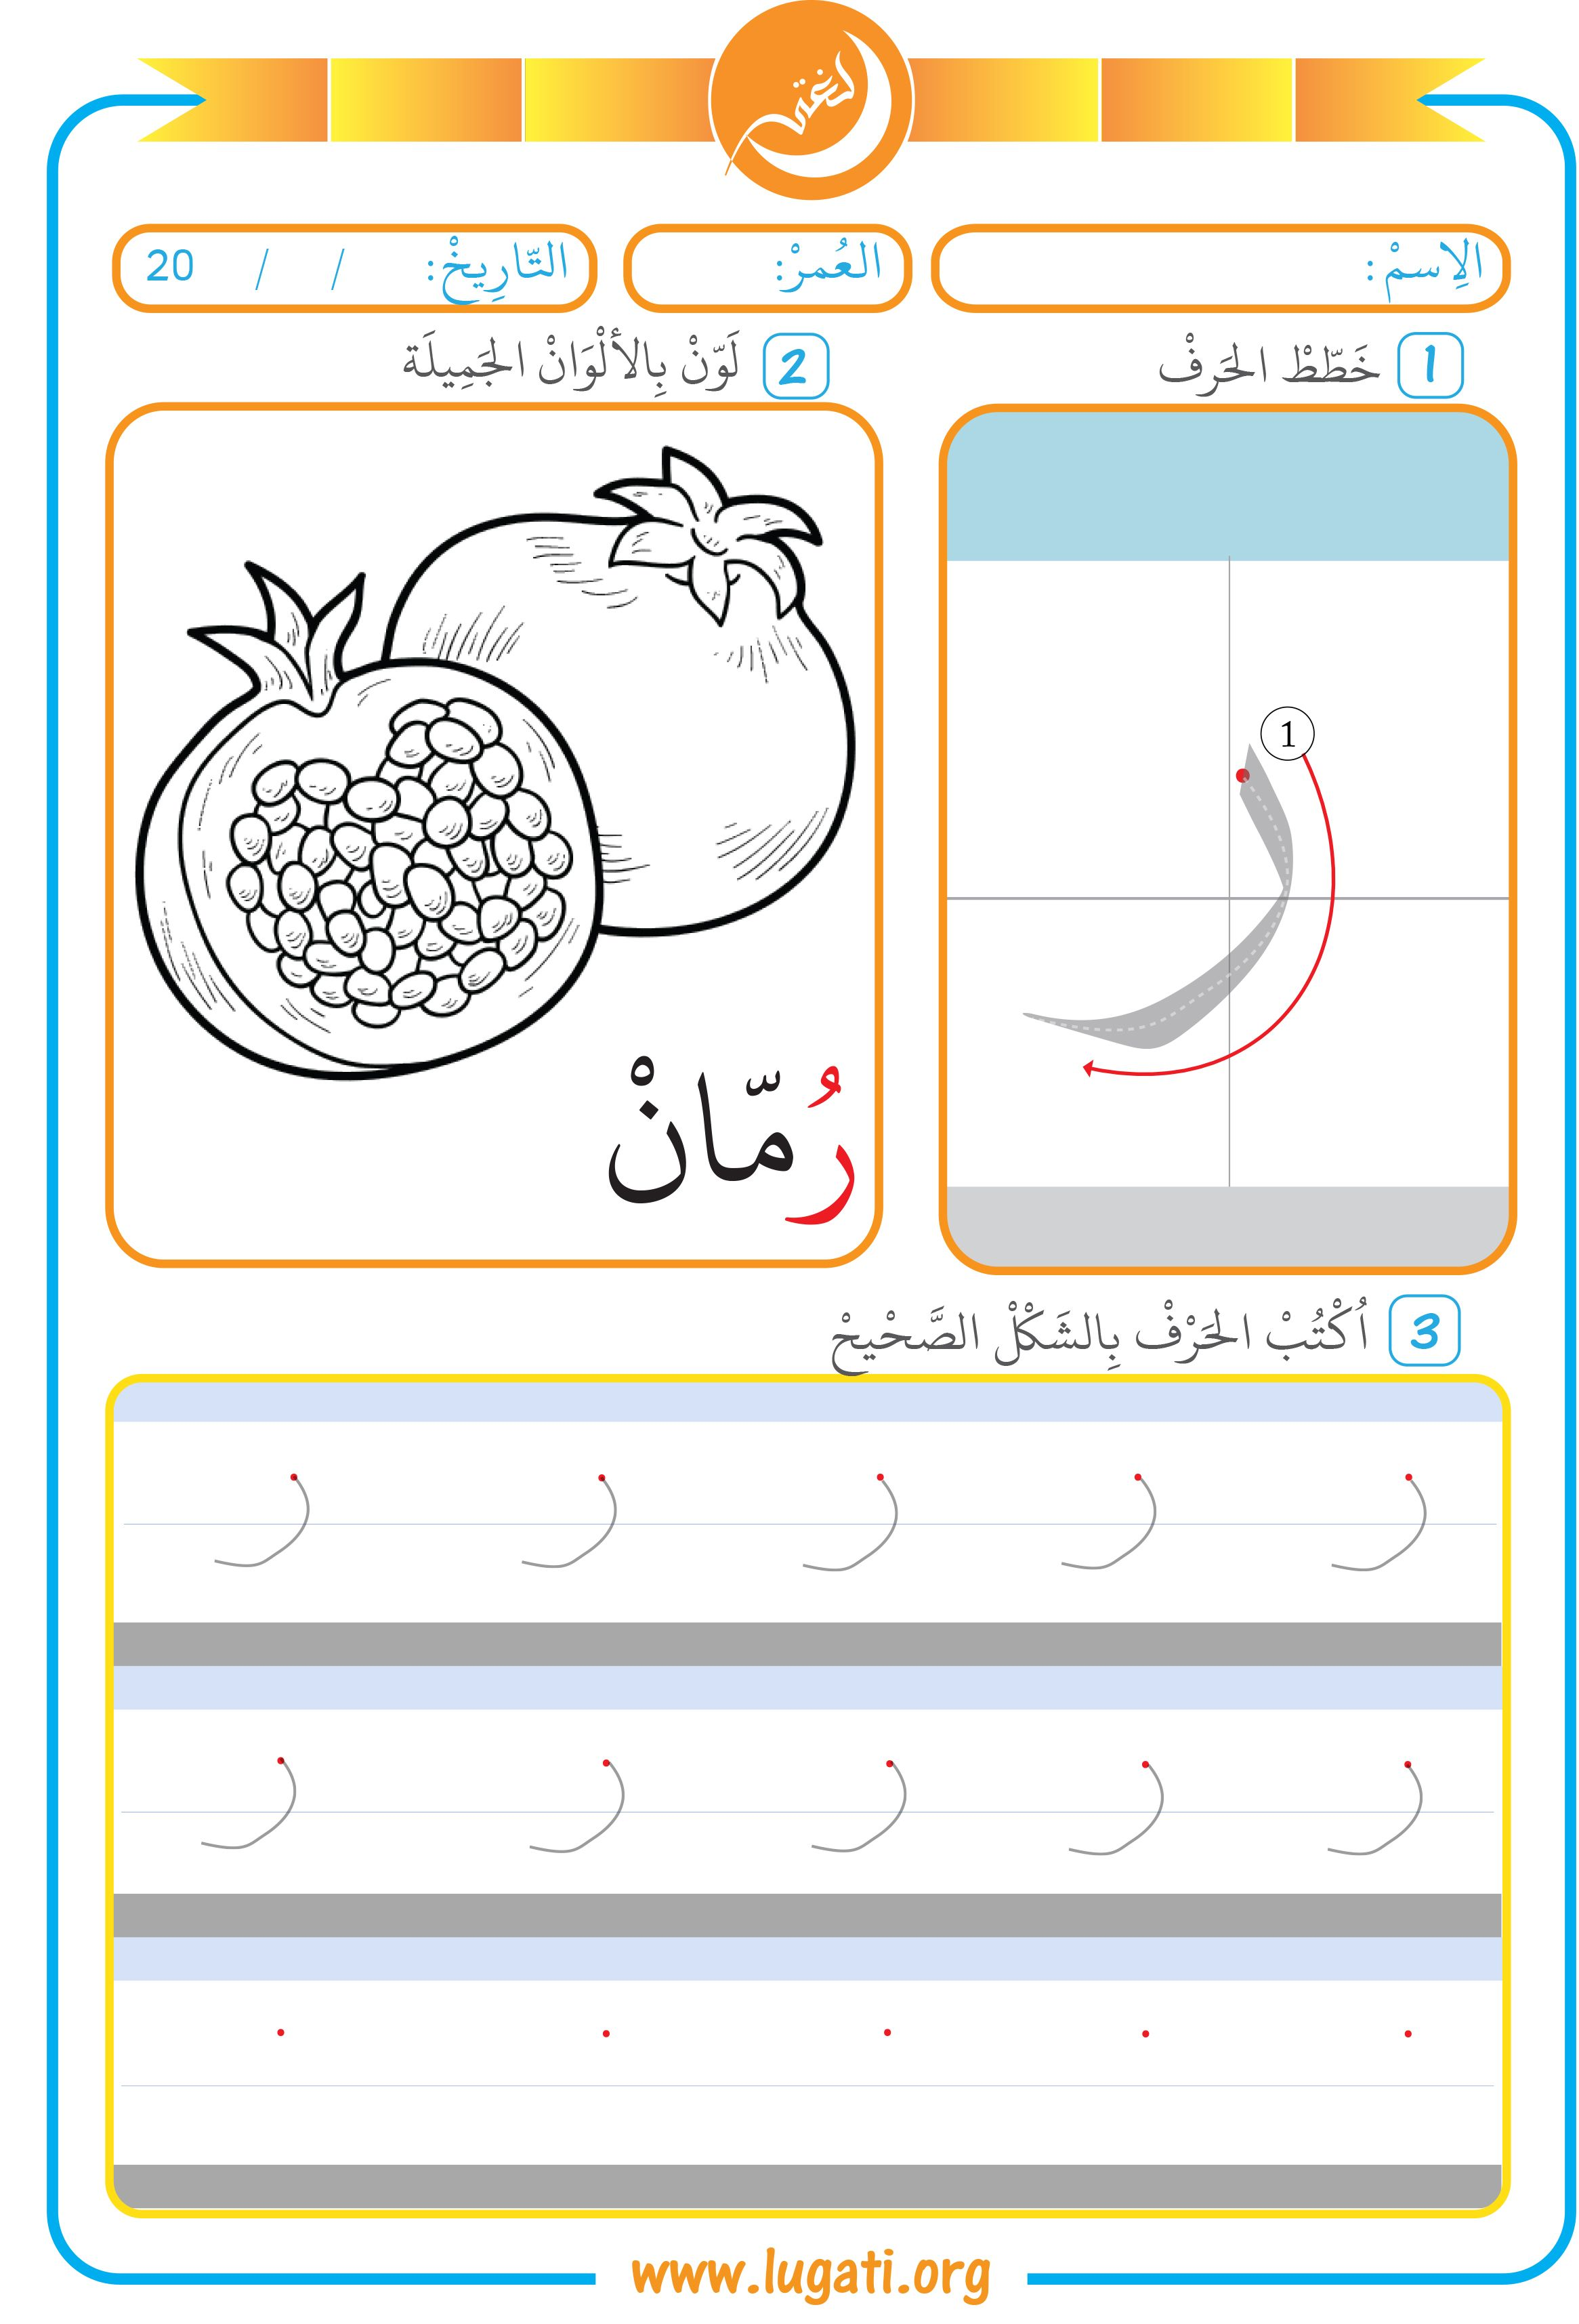 Level 1 This Arabic Worksheet Contains Three Exercises For Ra Letter ر 1 To Follow Th Arabic Alphabet For Kids Learn Arabic Alphabet Alphabet Letter Crafts